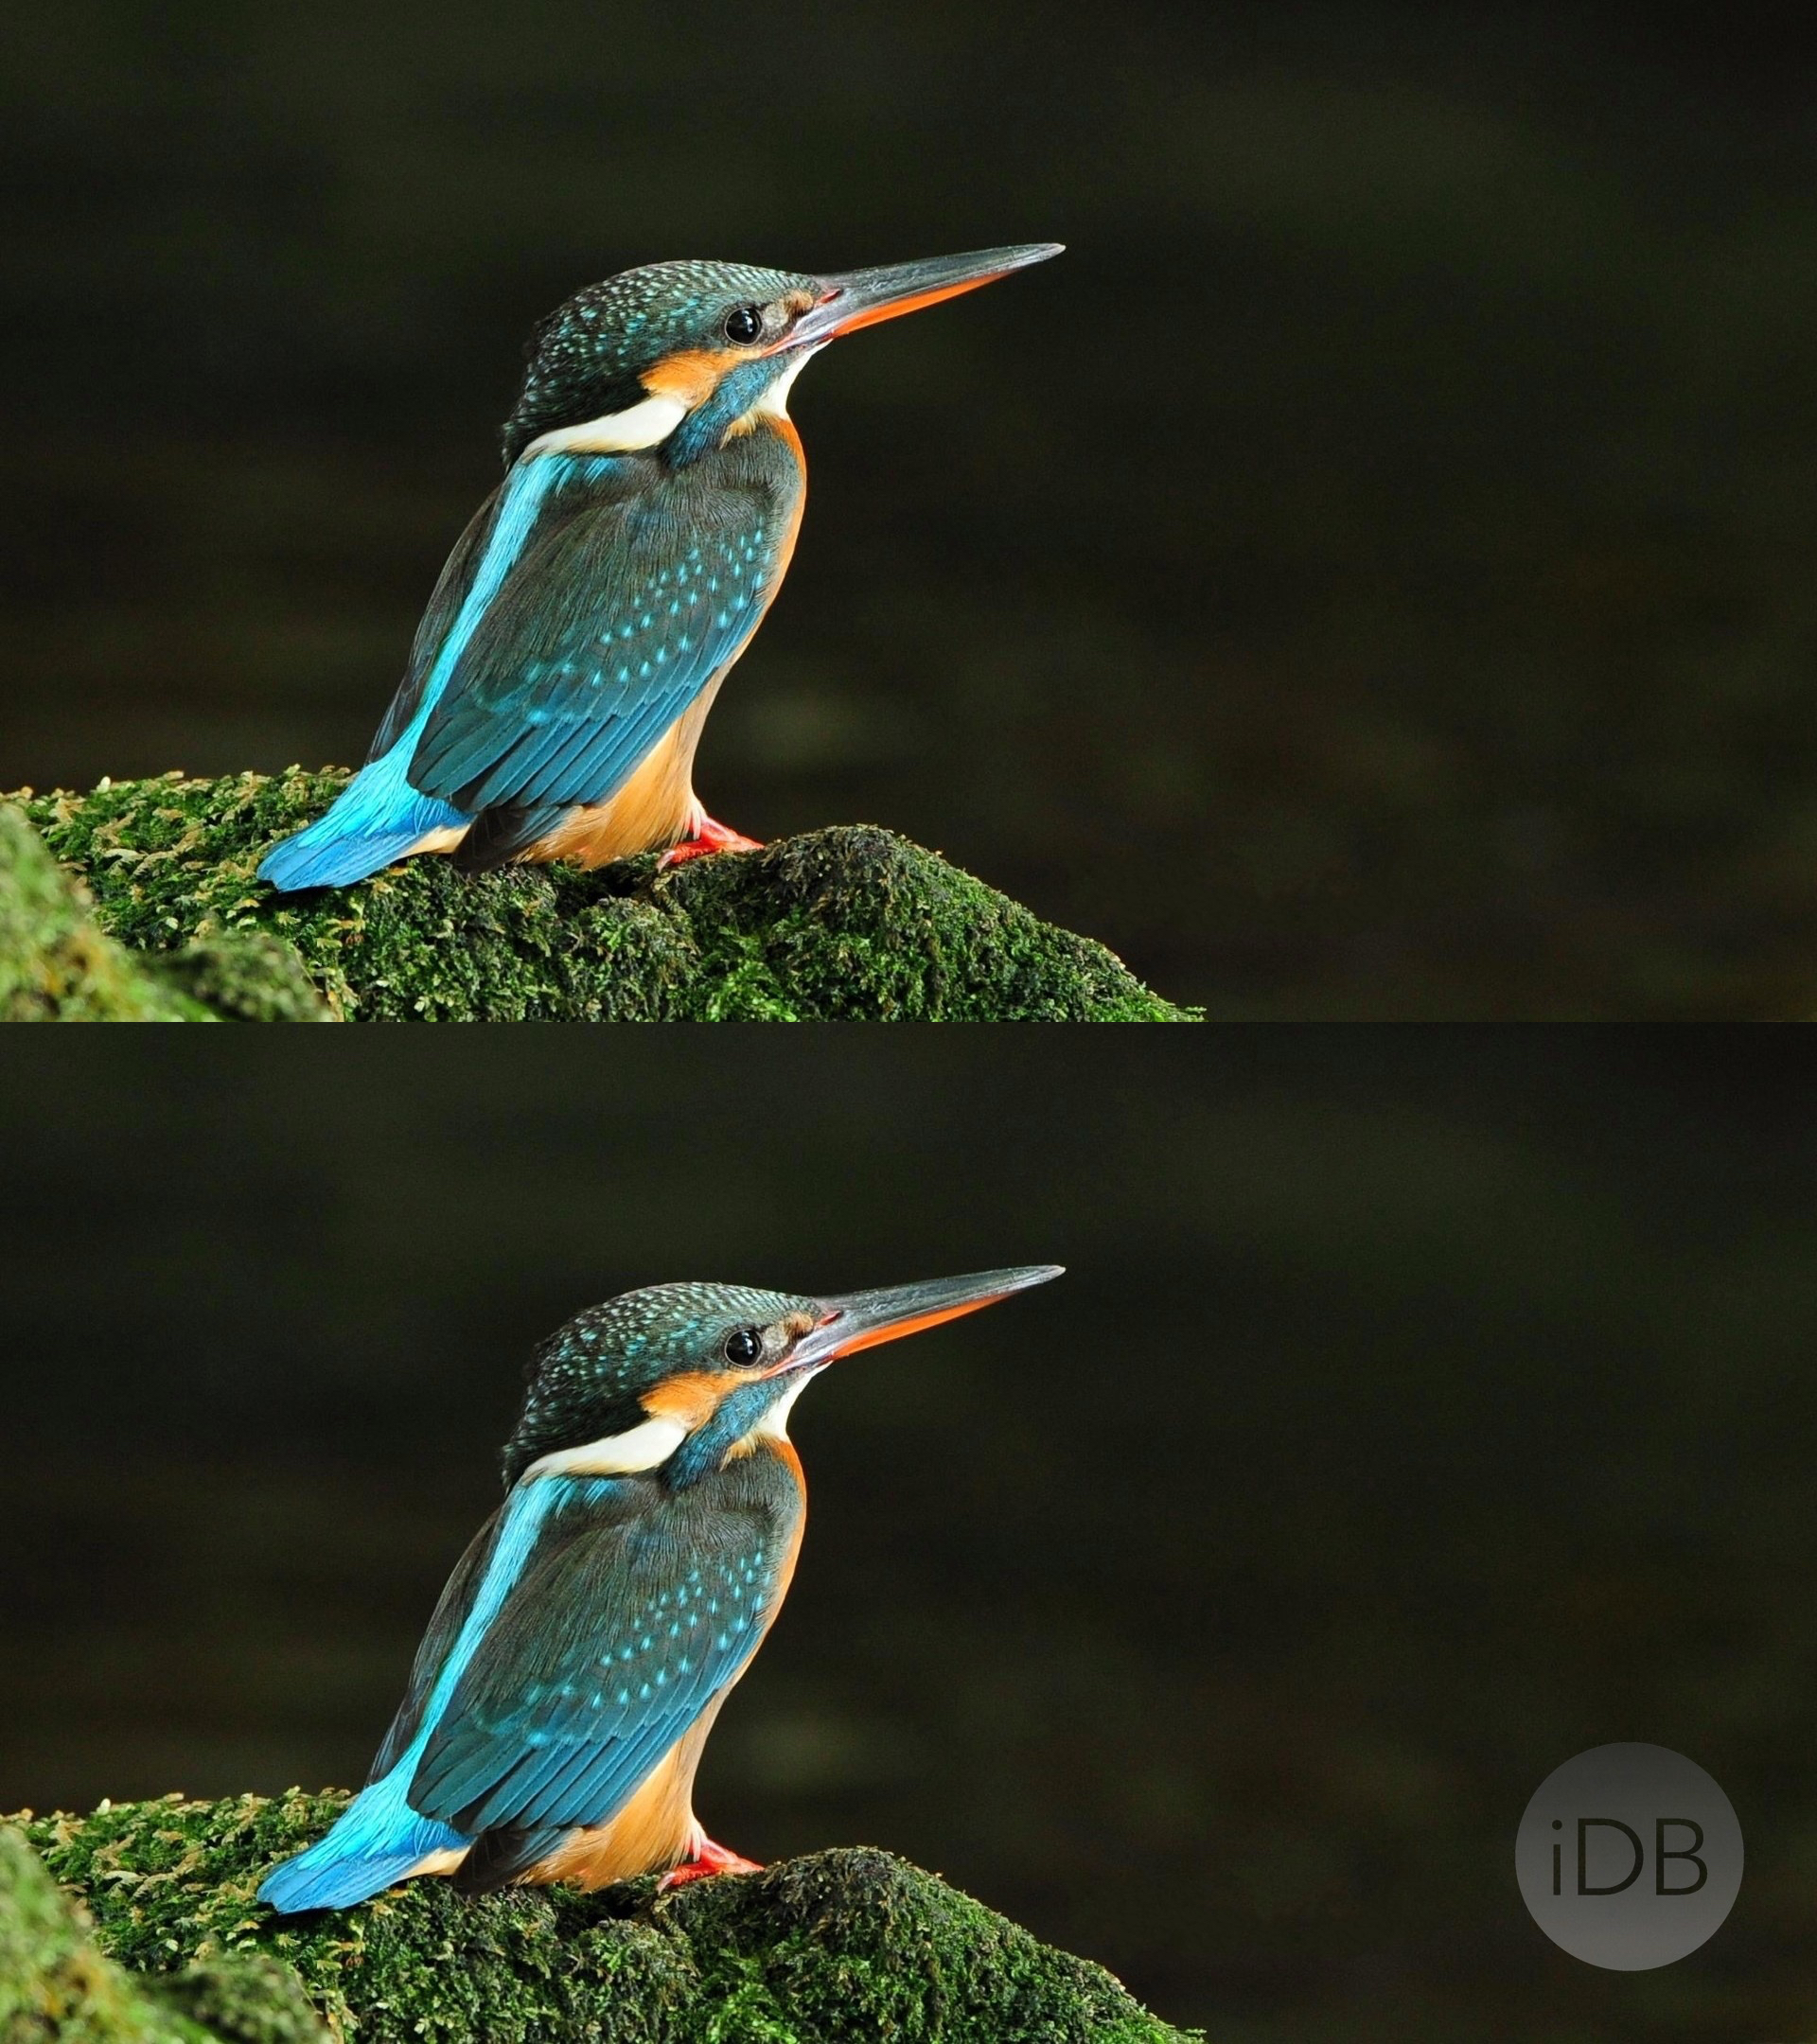 Bird Wallpaper Watermarked Before and After